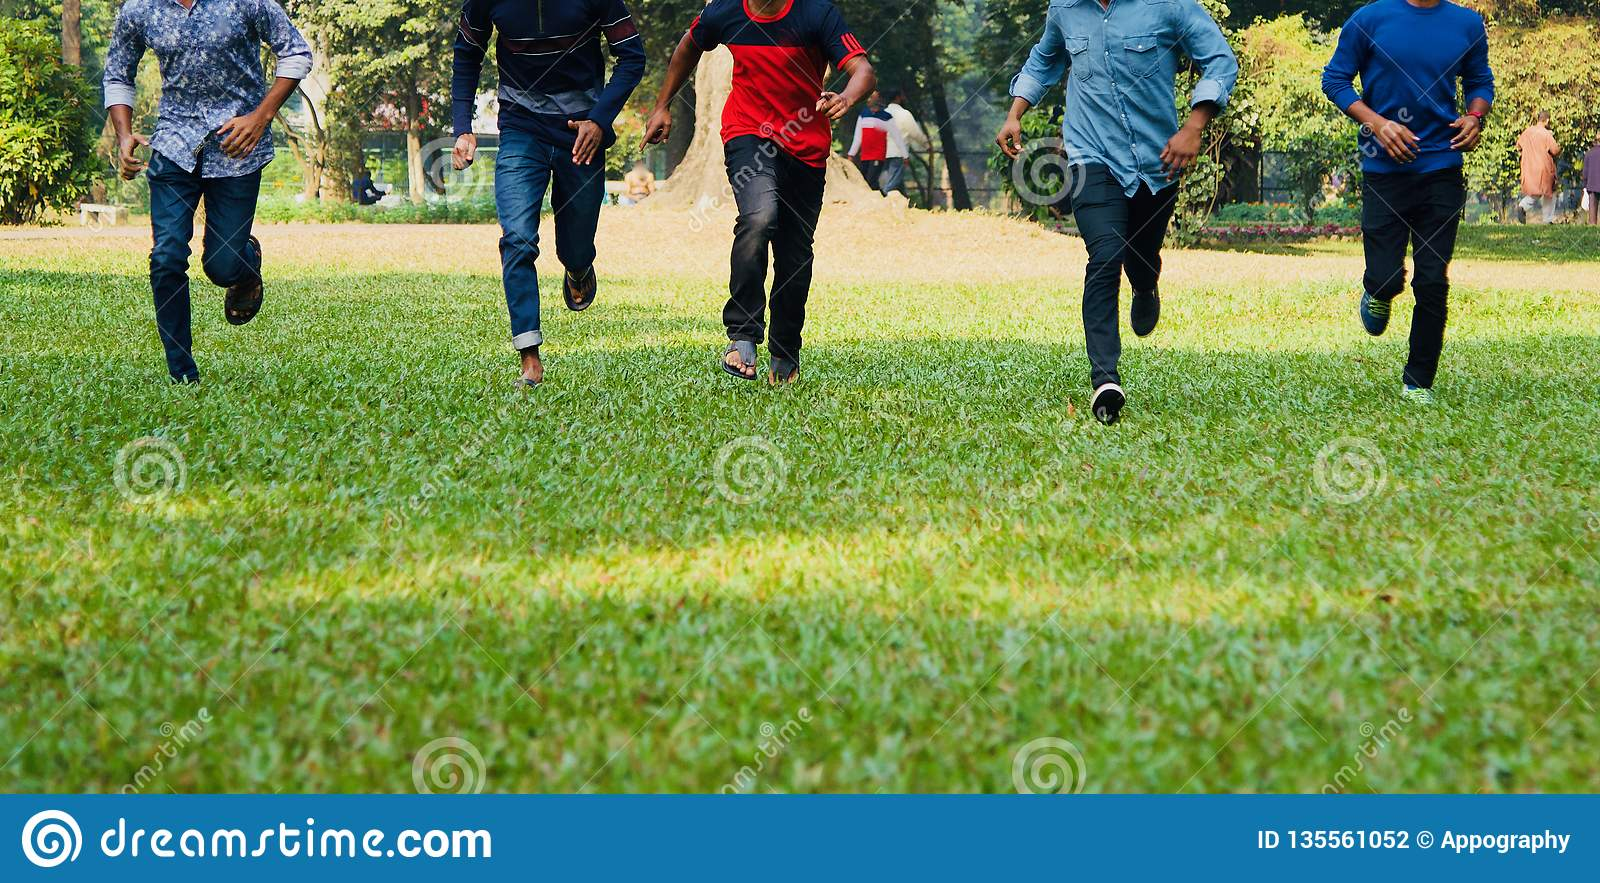 Young boys running around a park